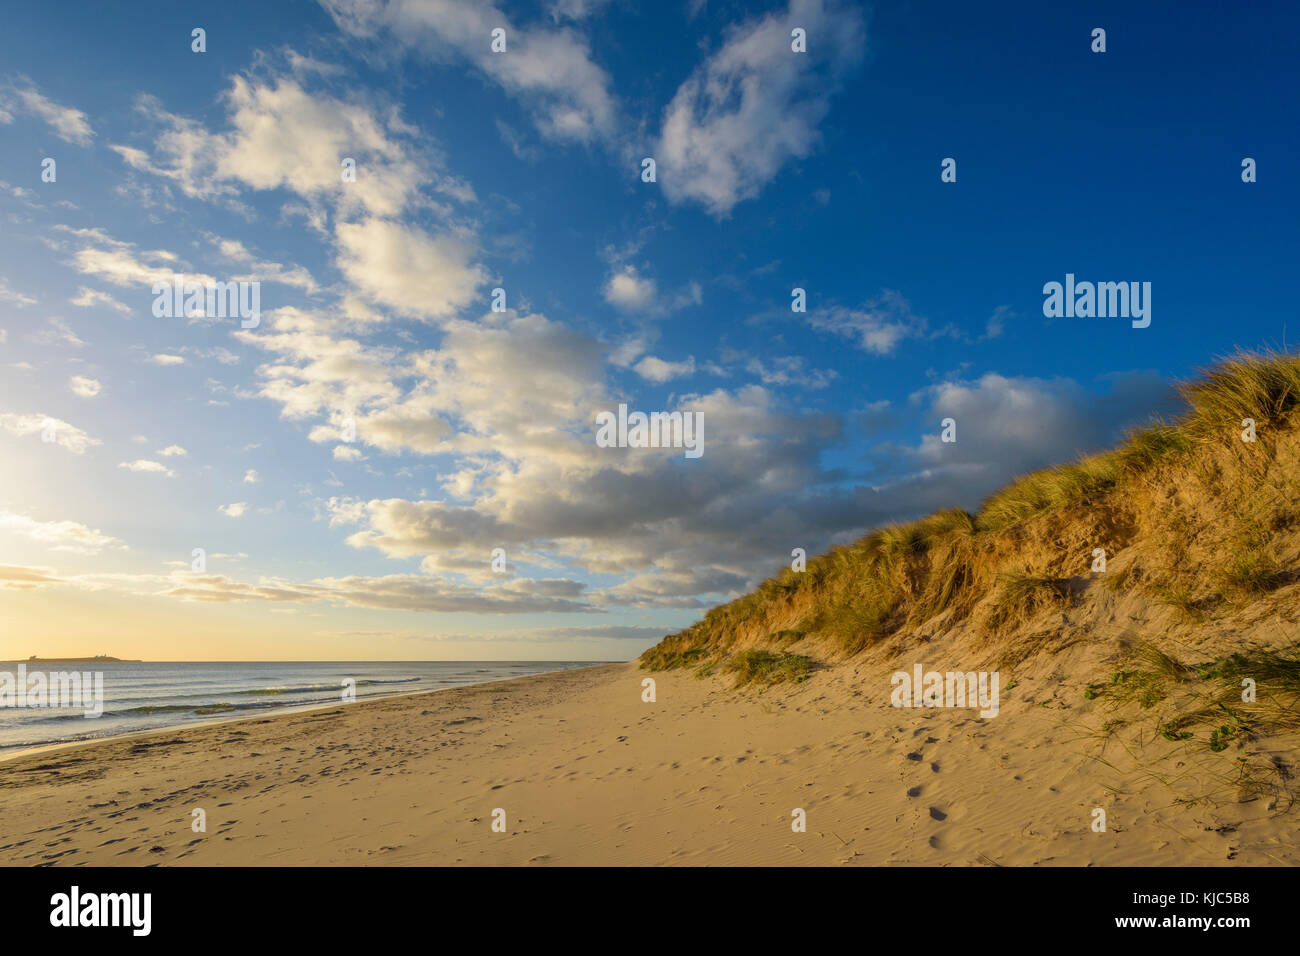 Footprints in the sand along the beach with the North Sea at Bamburgh in Northumberland, England, United Kingdom - Stock Image